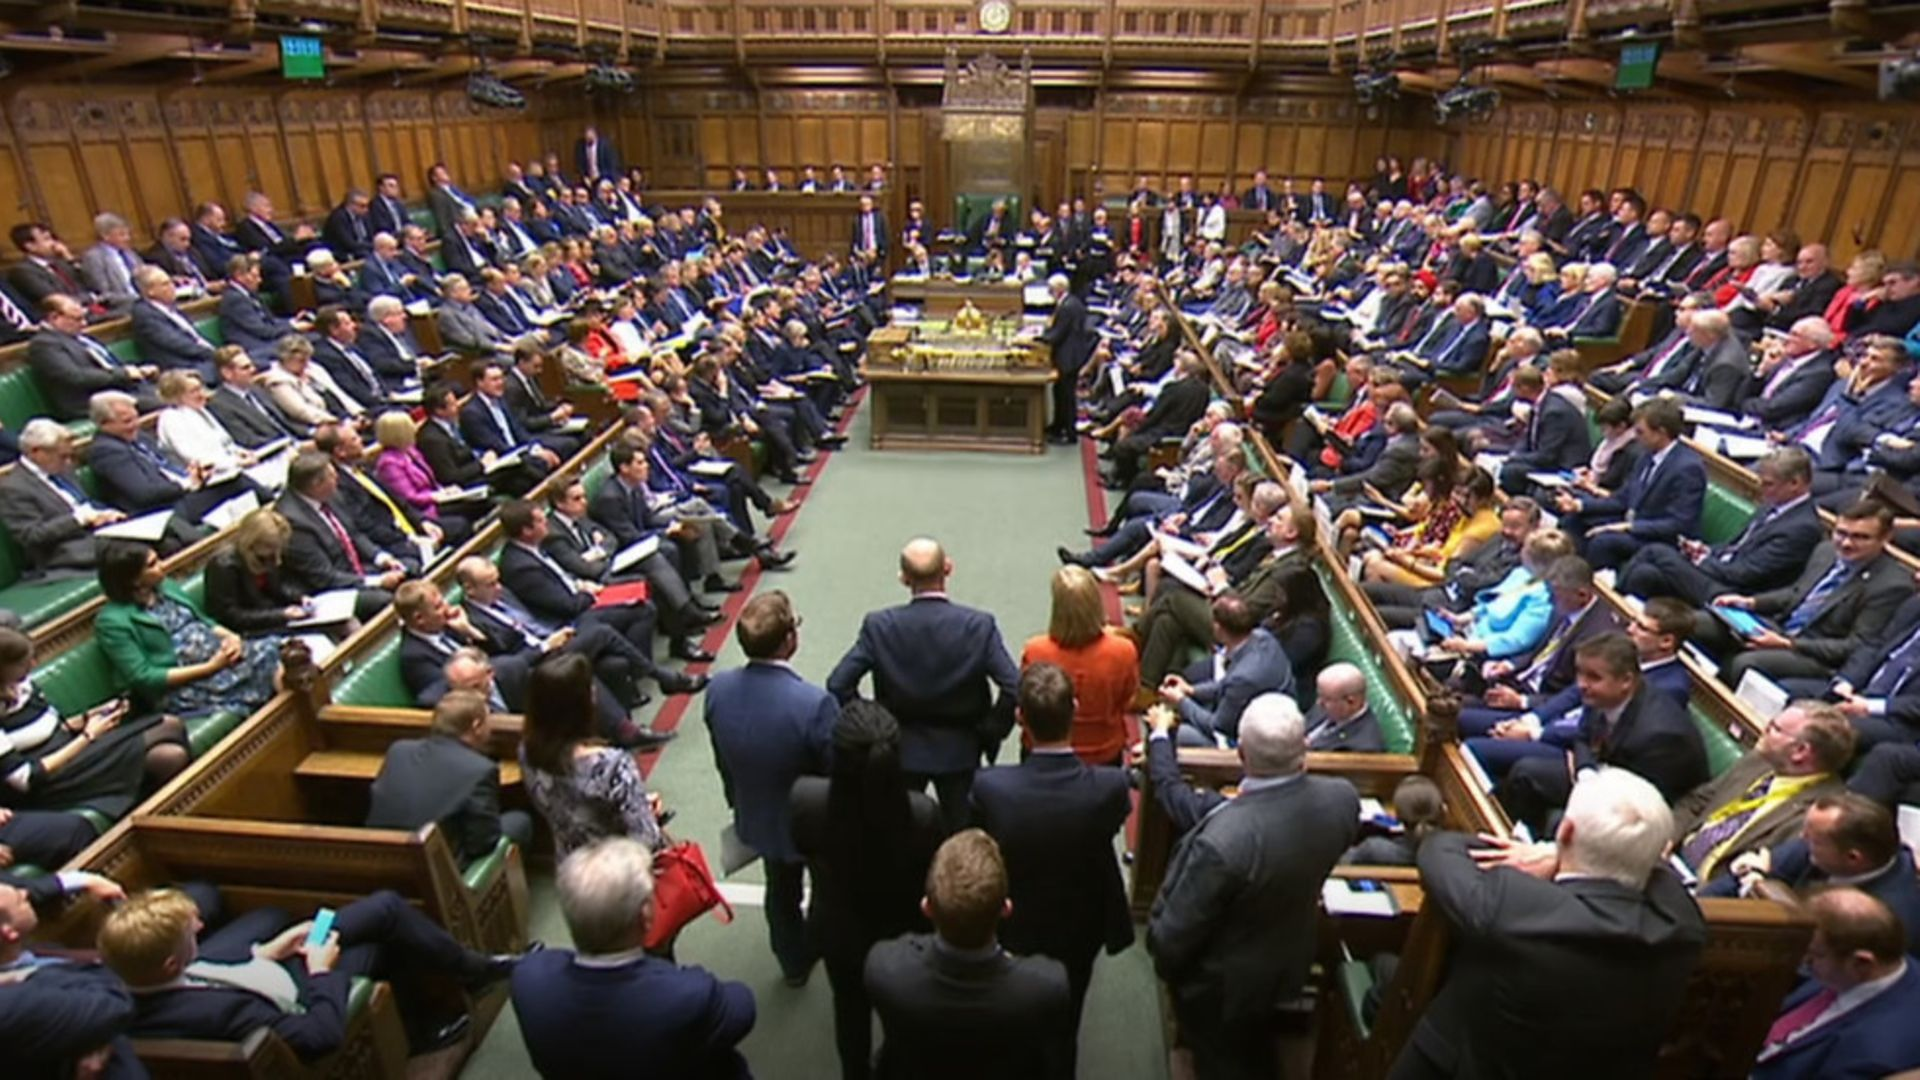 MPs in the House of Commons - Credit: PA